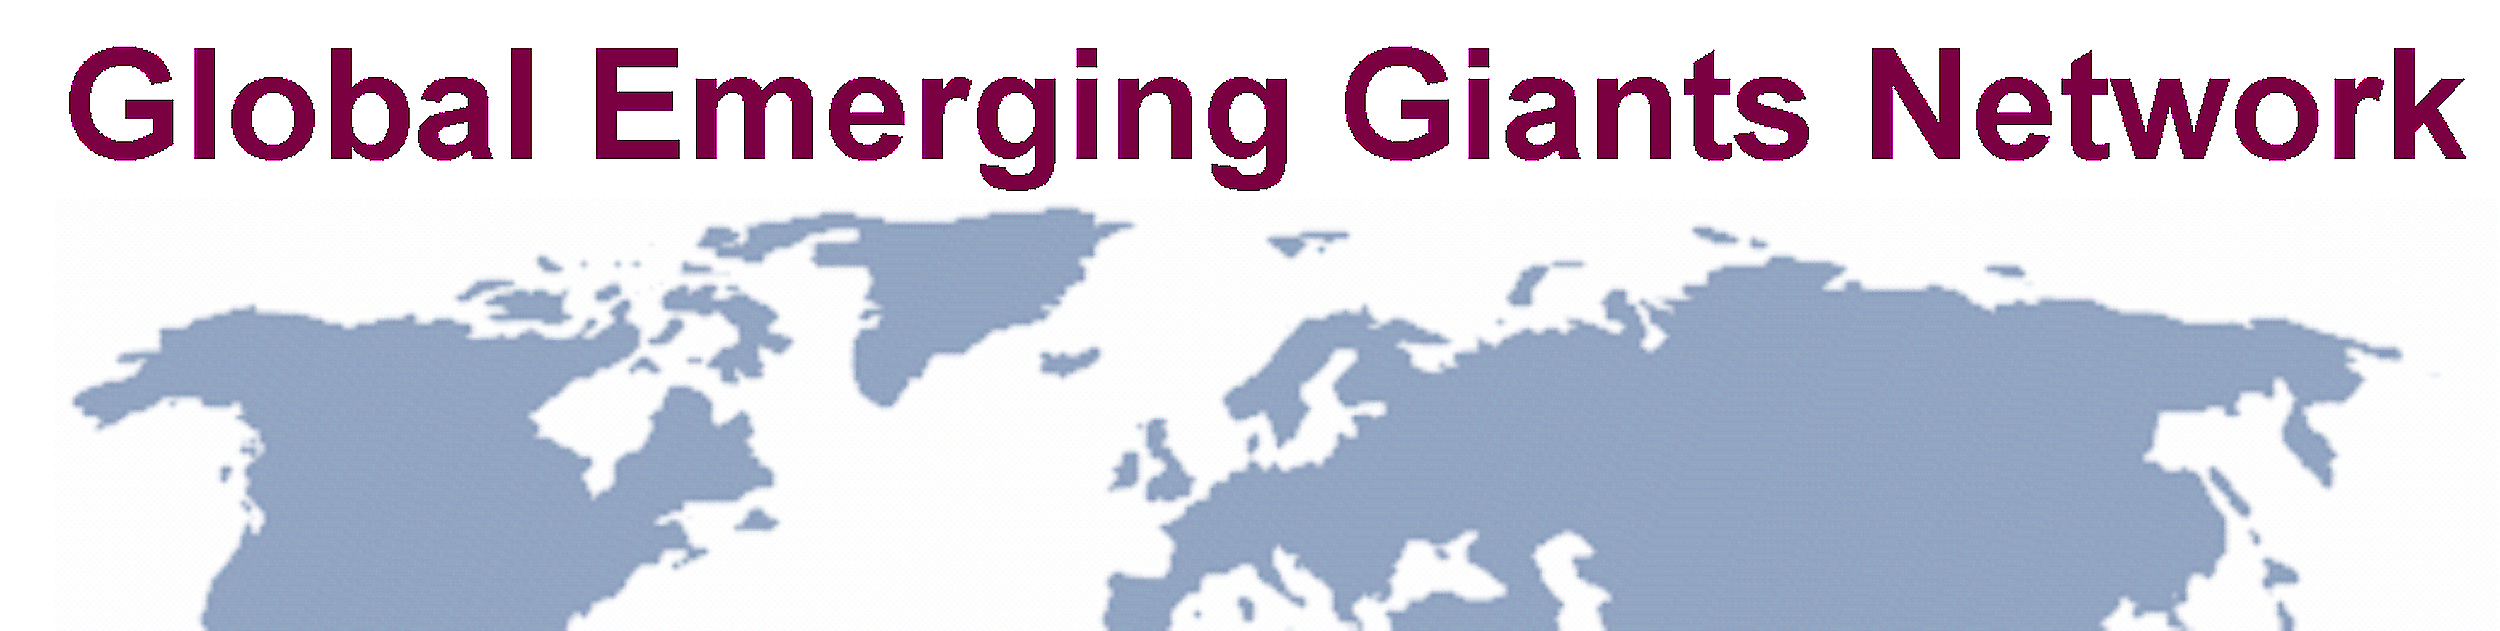 Global Emerging Giants Network, Malta